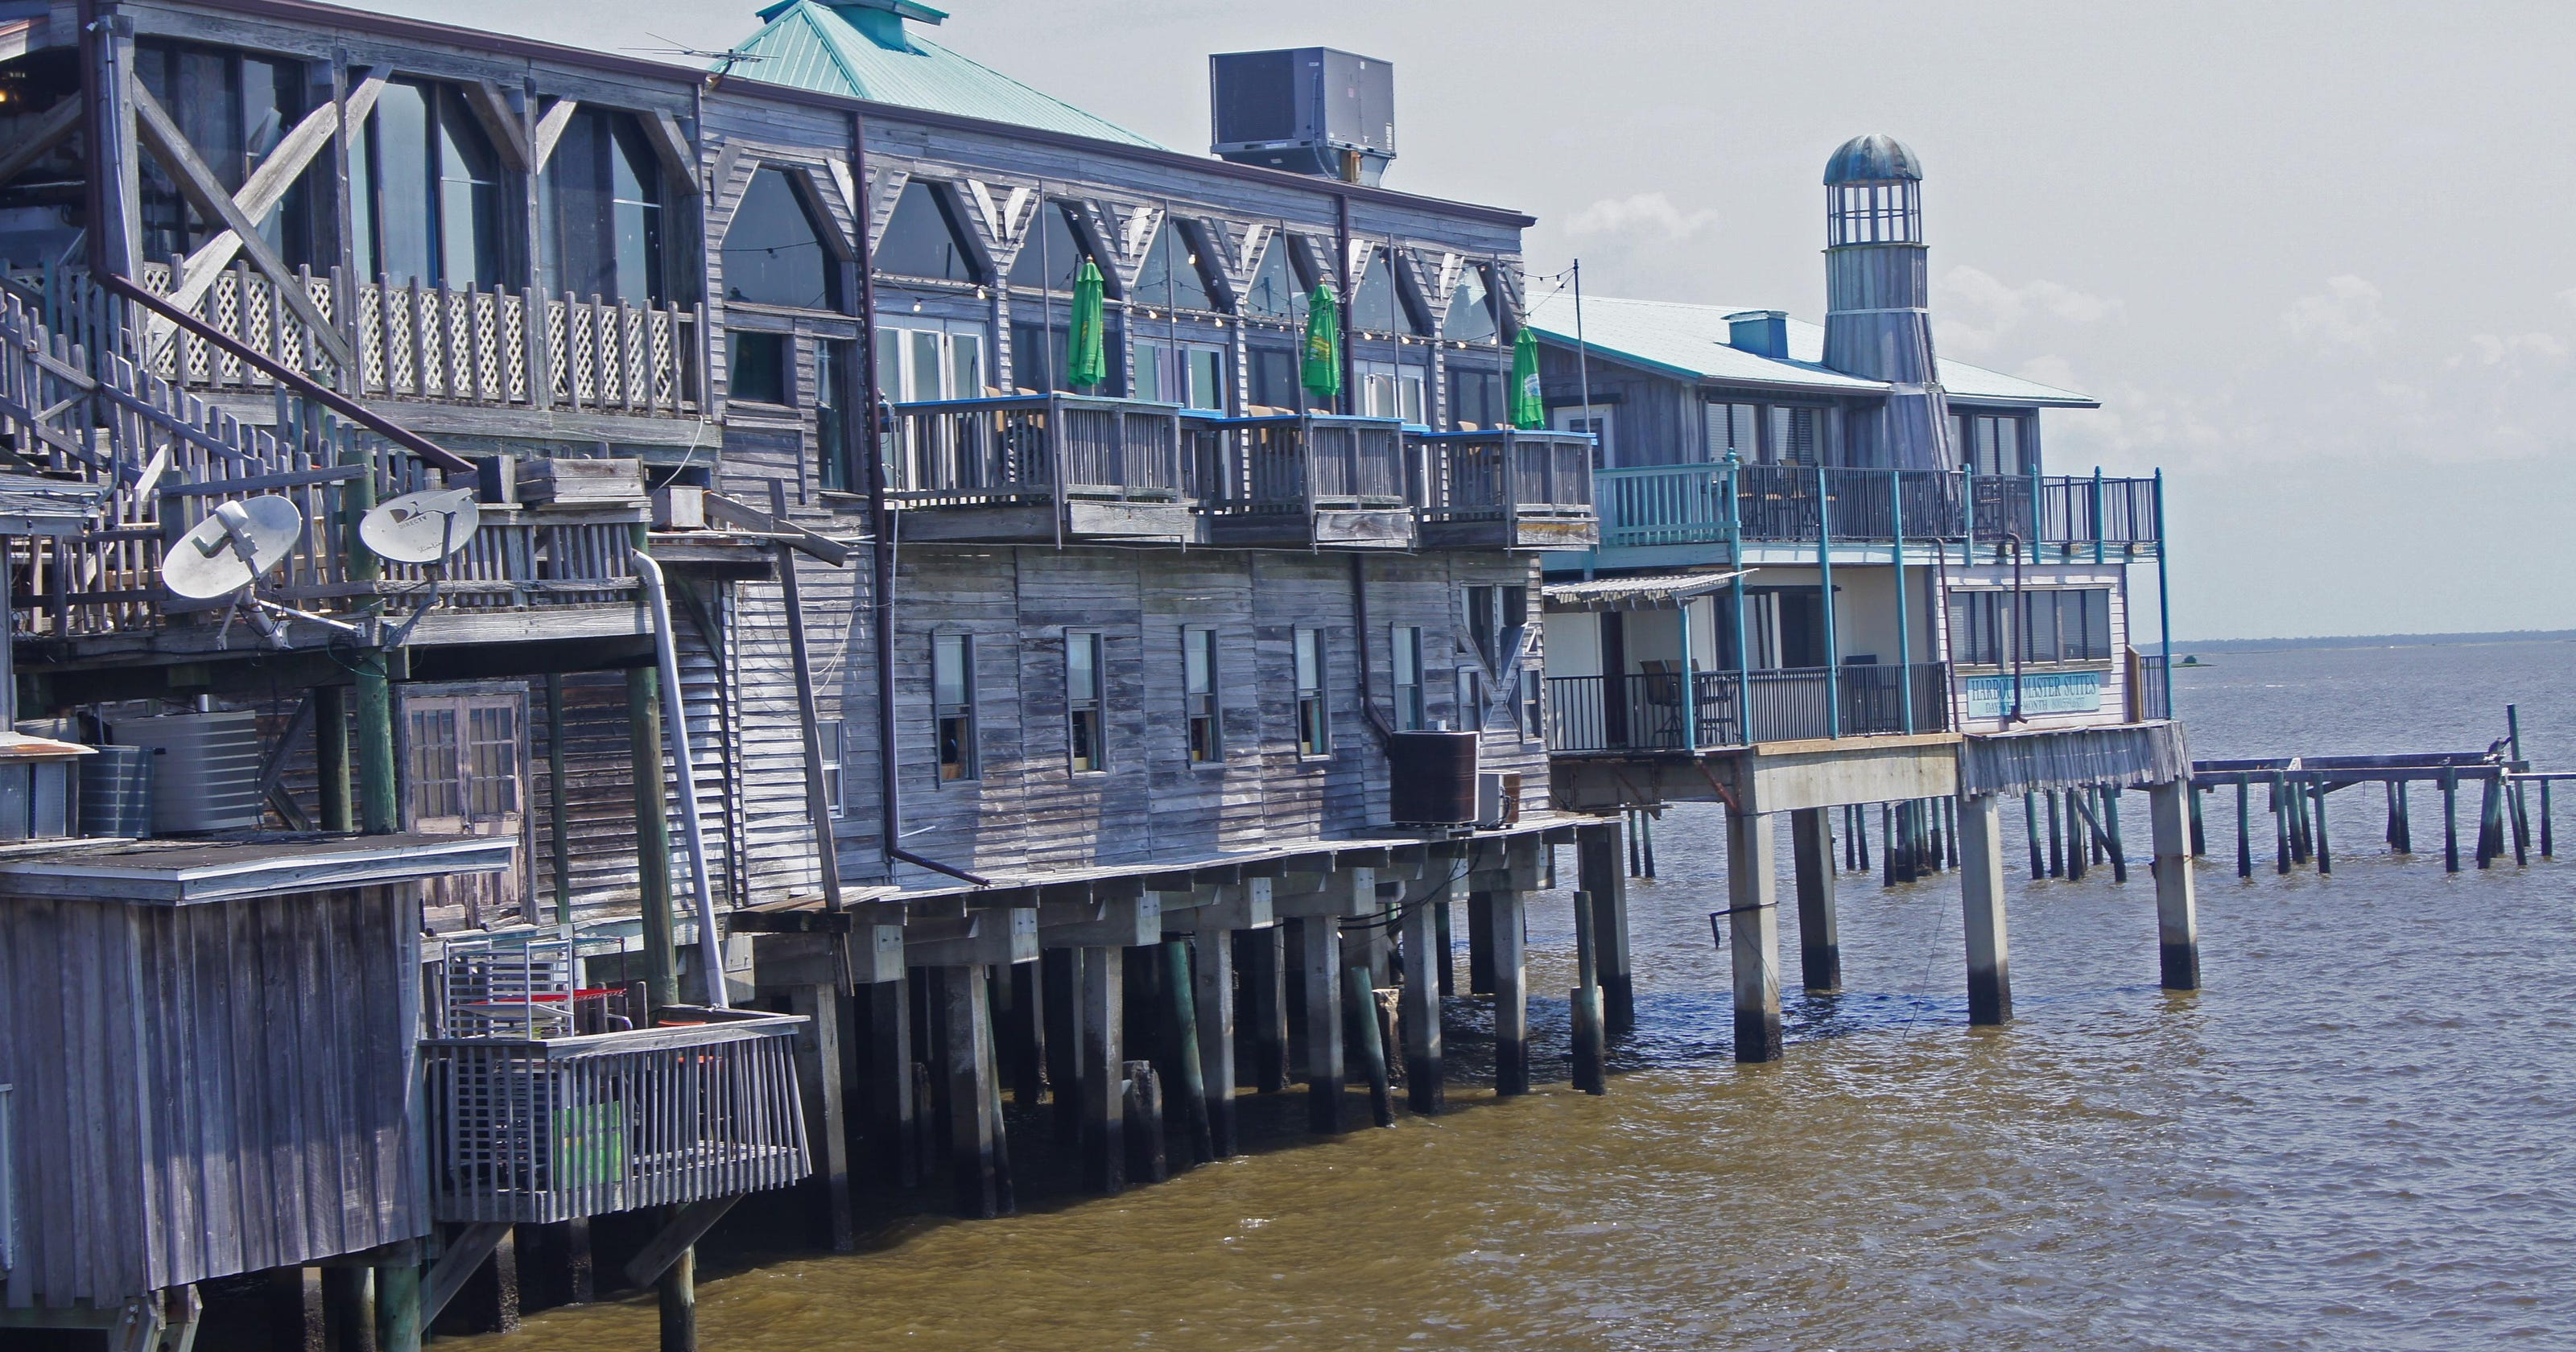 Authentic Florida Cedar Key Takes You Back In Time